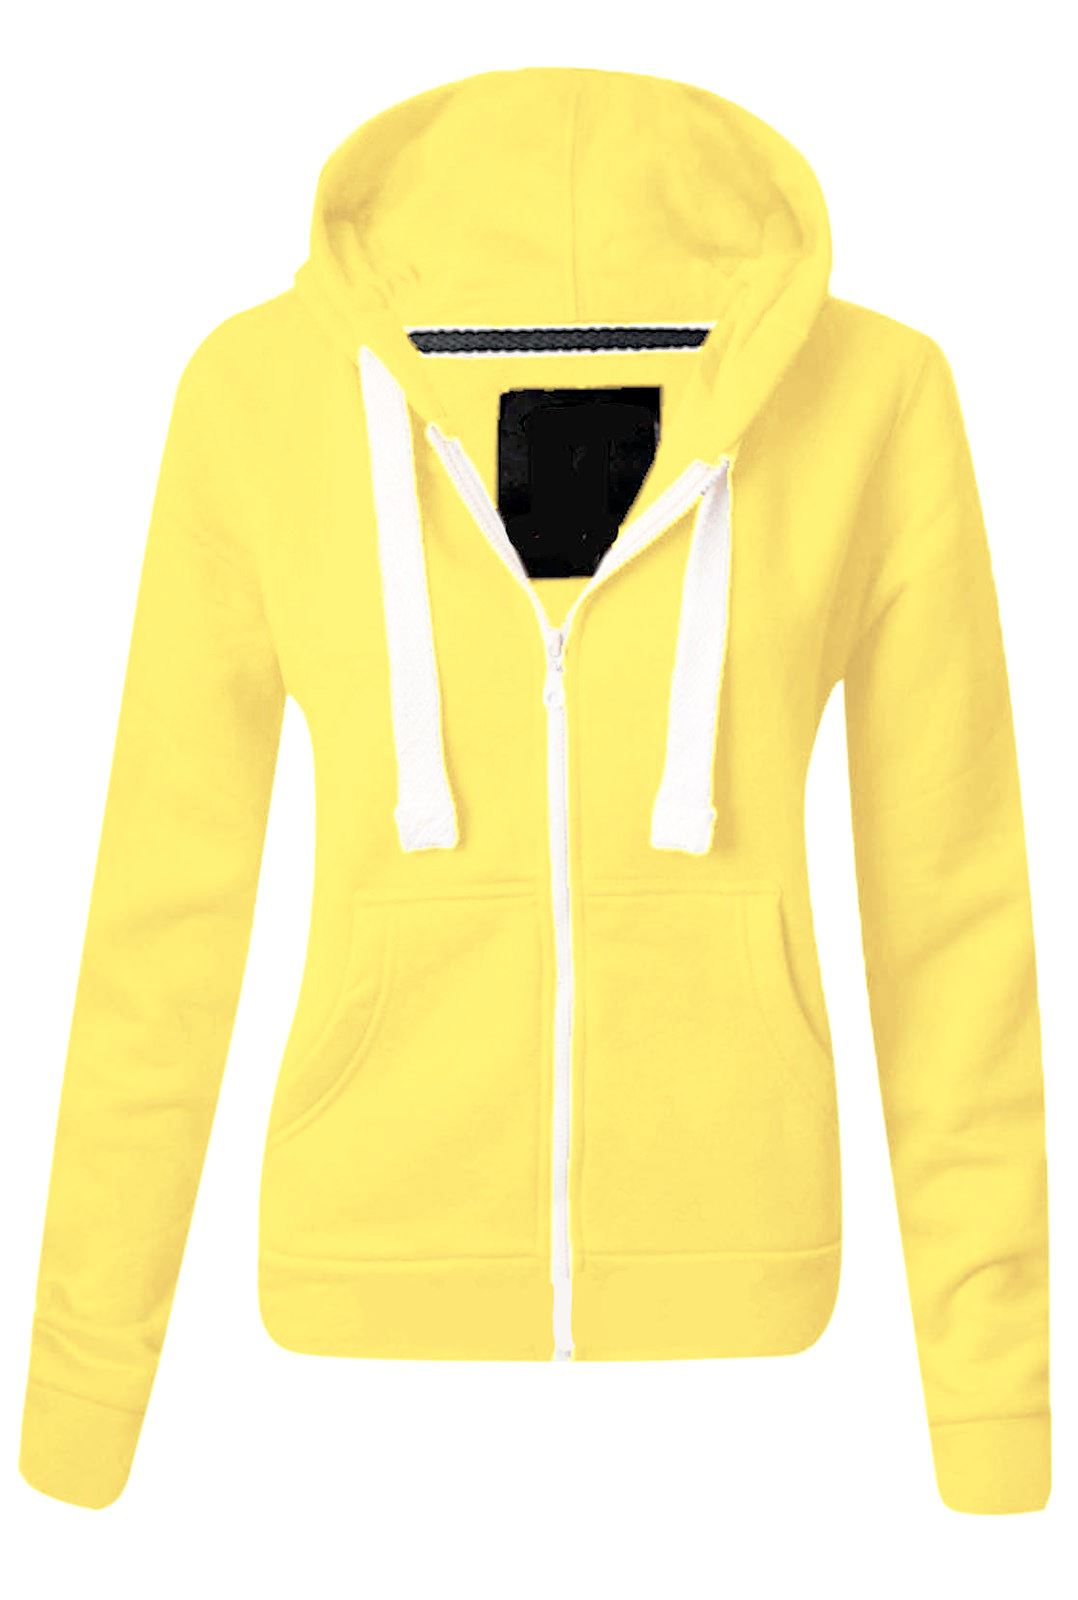 Yellow Hoodie Womens | Fashion Ql